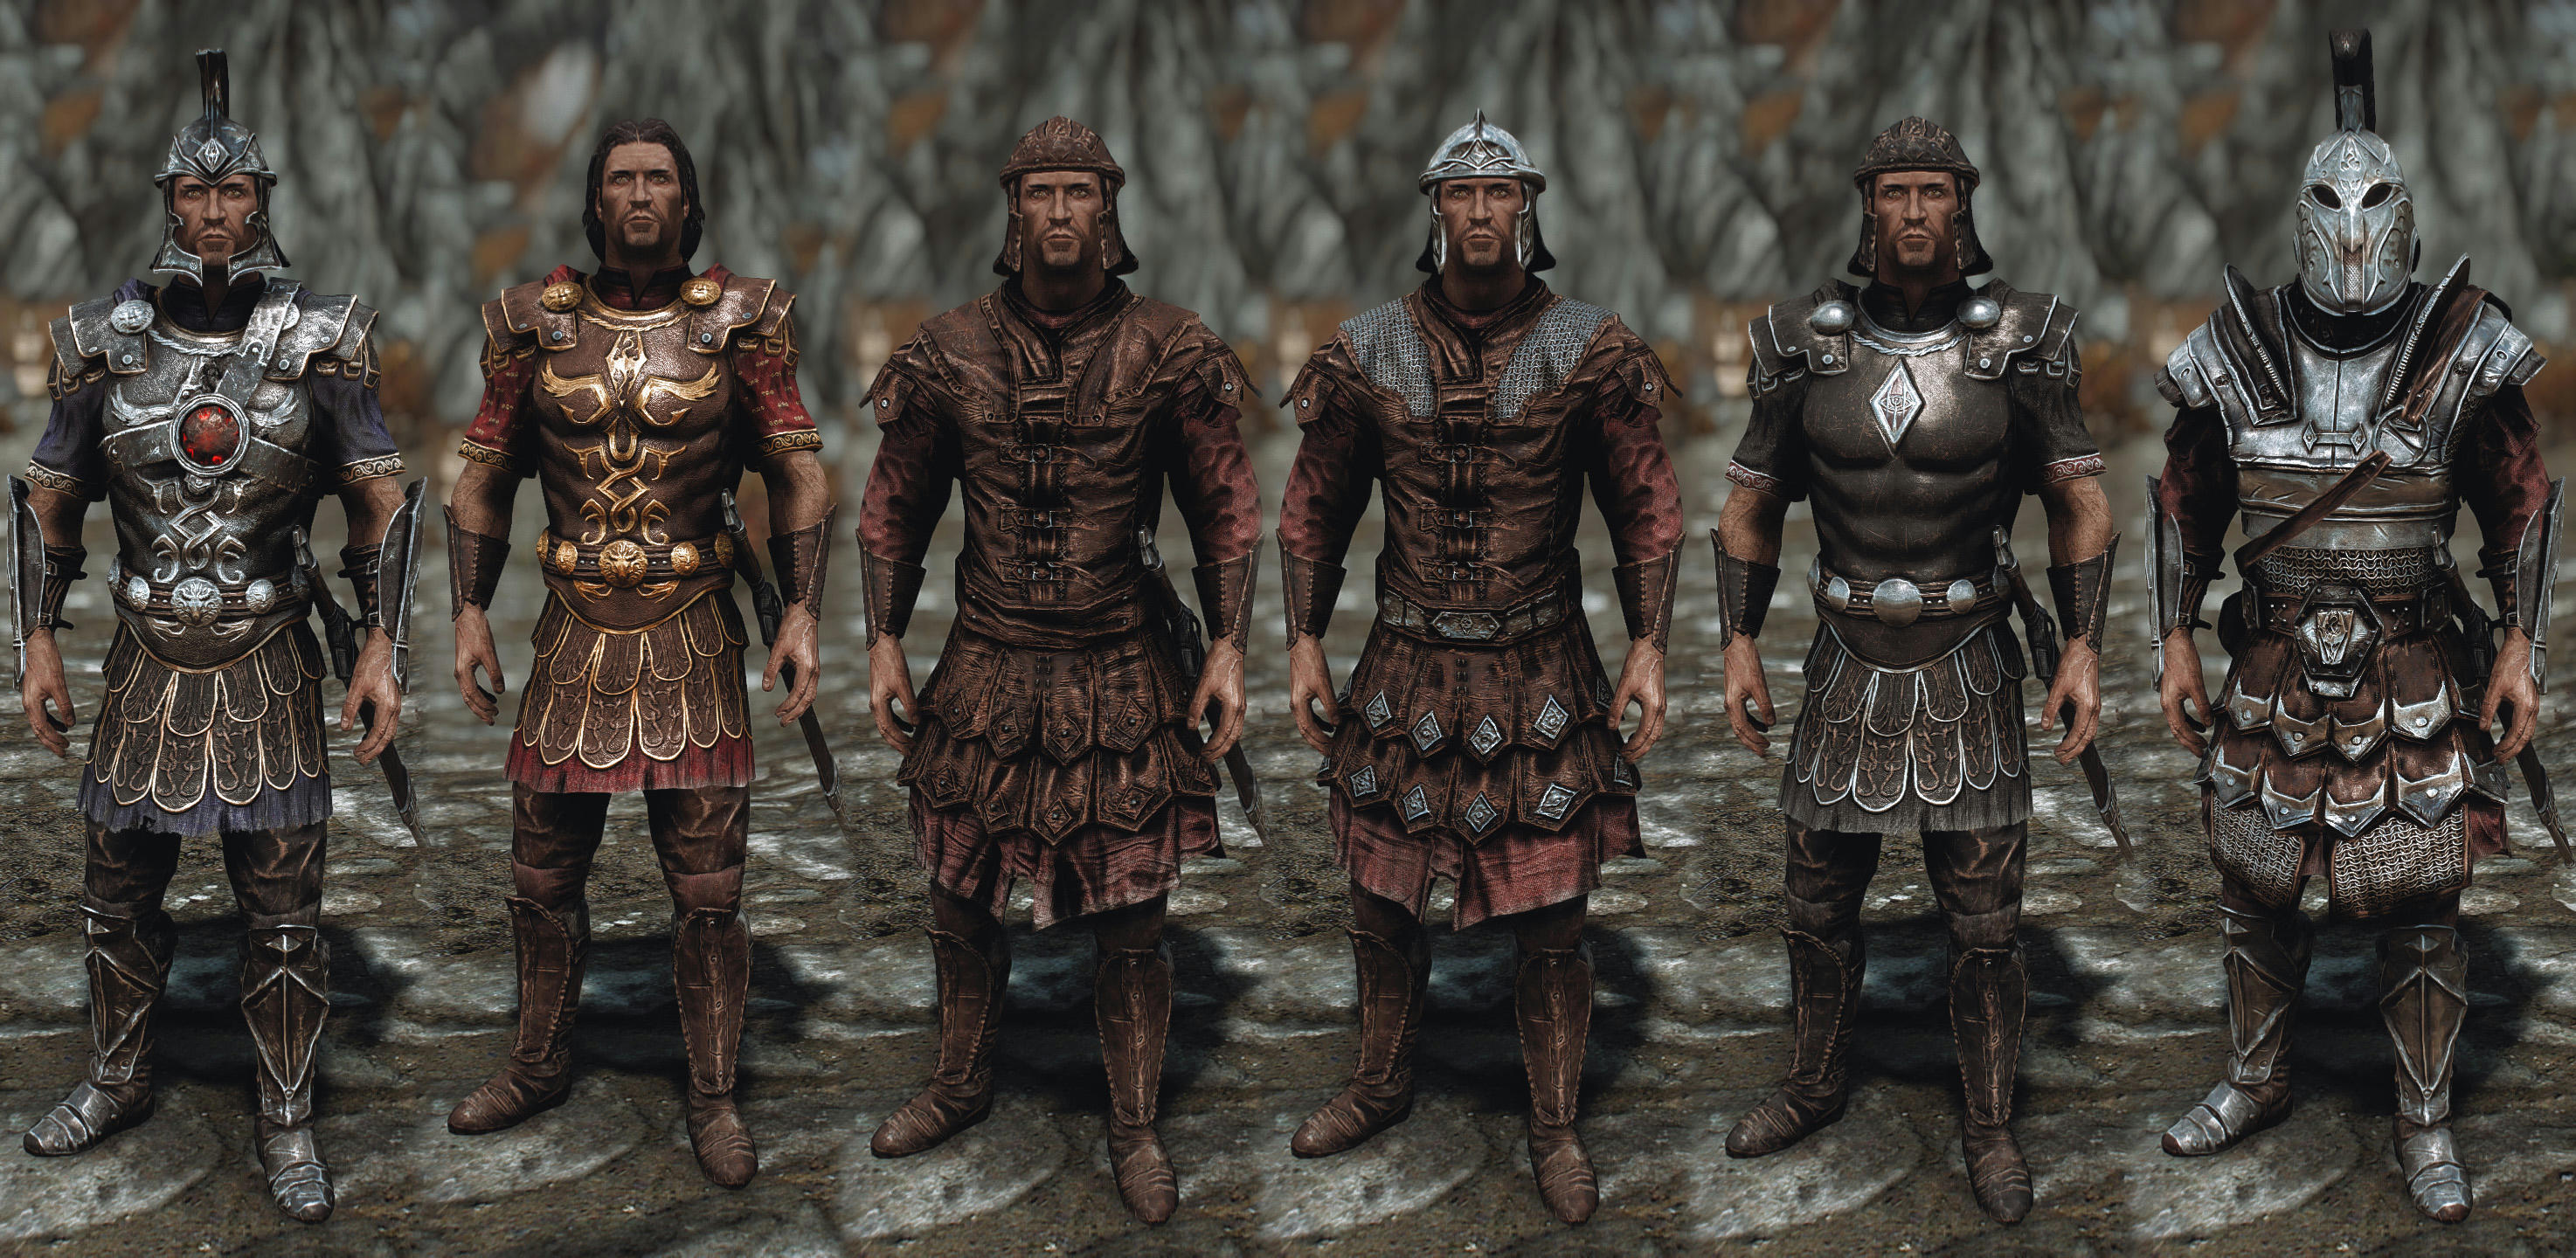 Frankly HD Imperial Armor and Weapons at Skyrim Nexus - mods